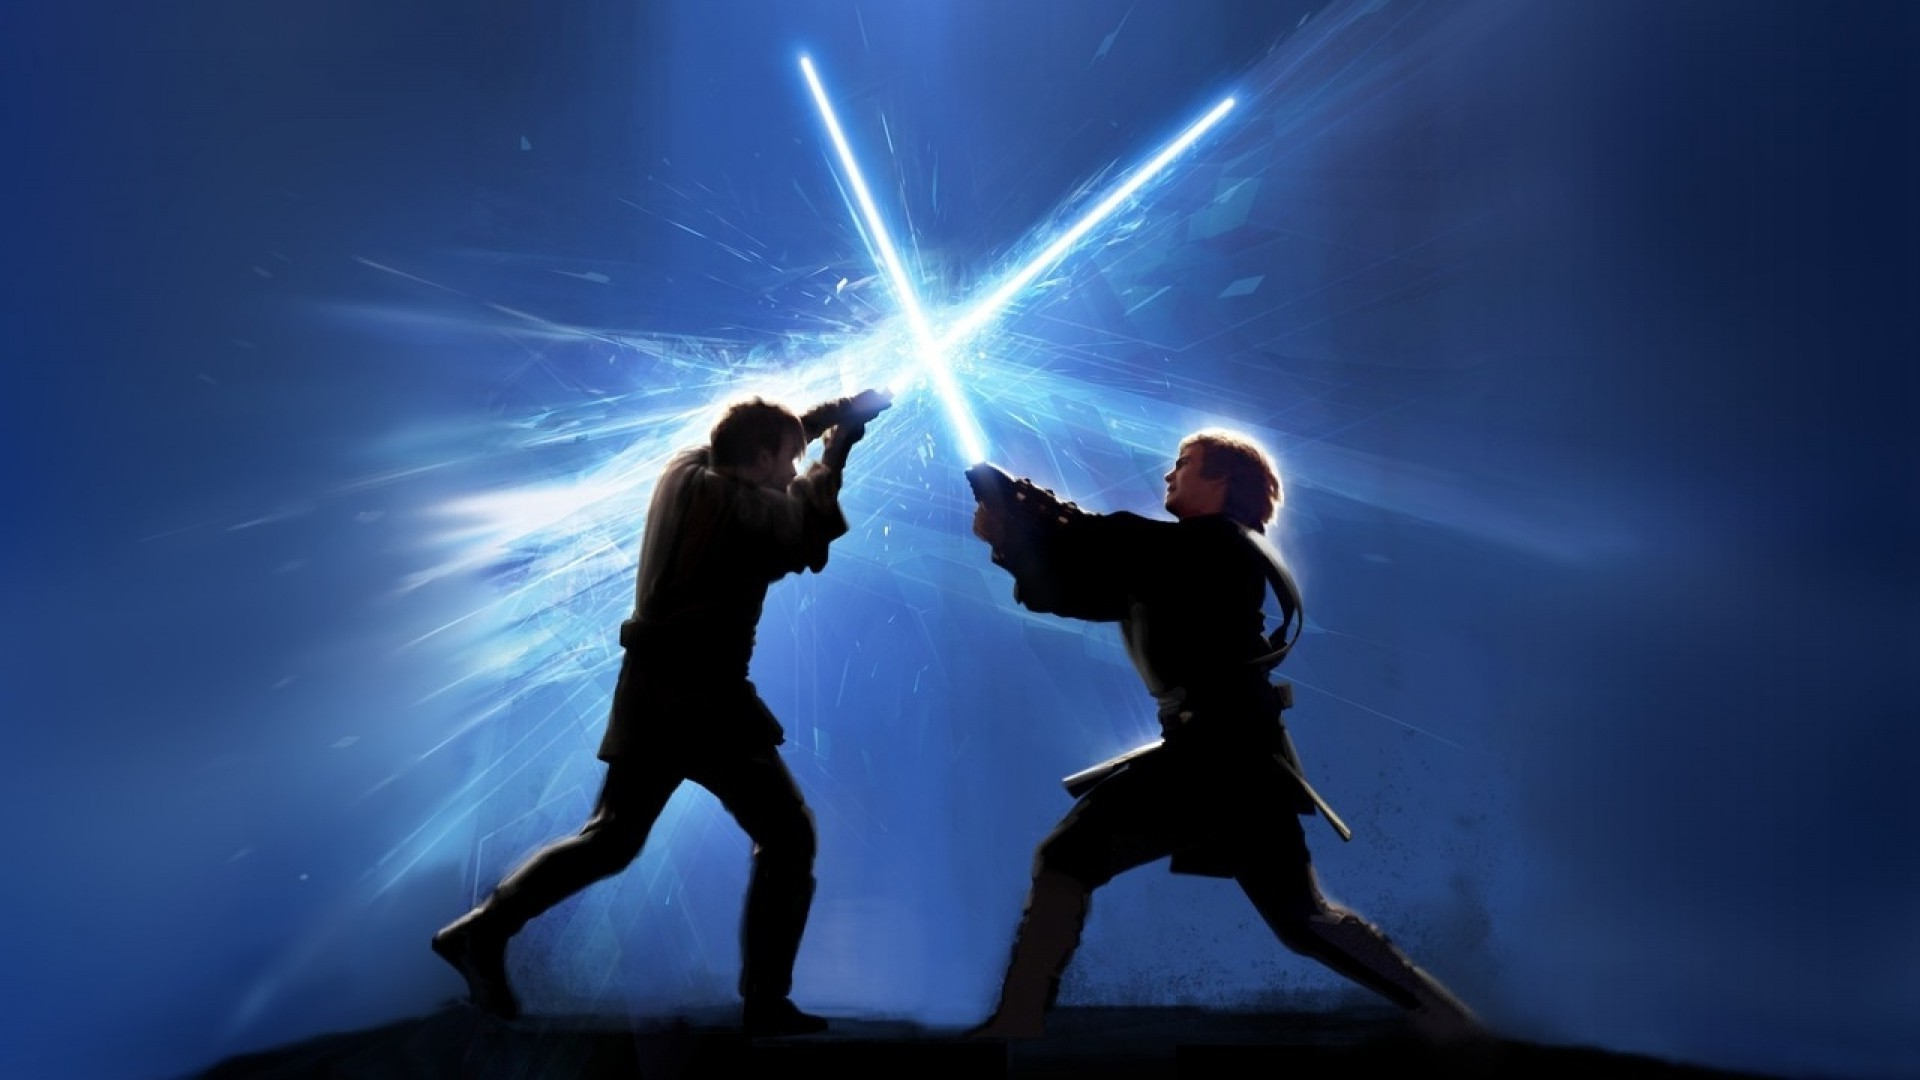 Star Wars Star Wars Star Wars Wallpaper Lightsaber Fight 1920x1080 Wallpaper Teahub Io